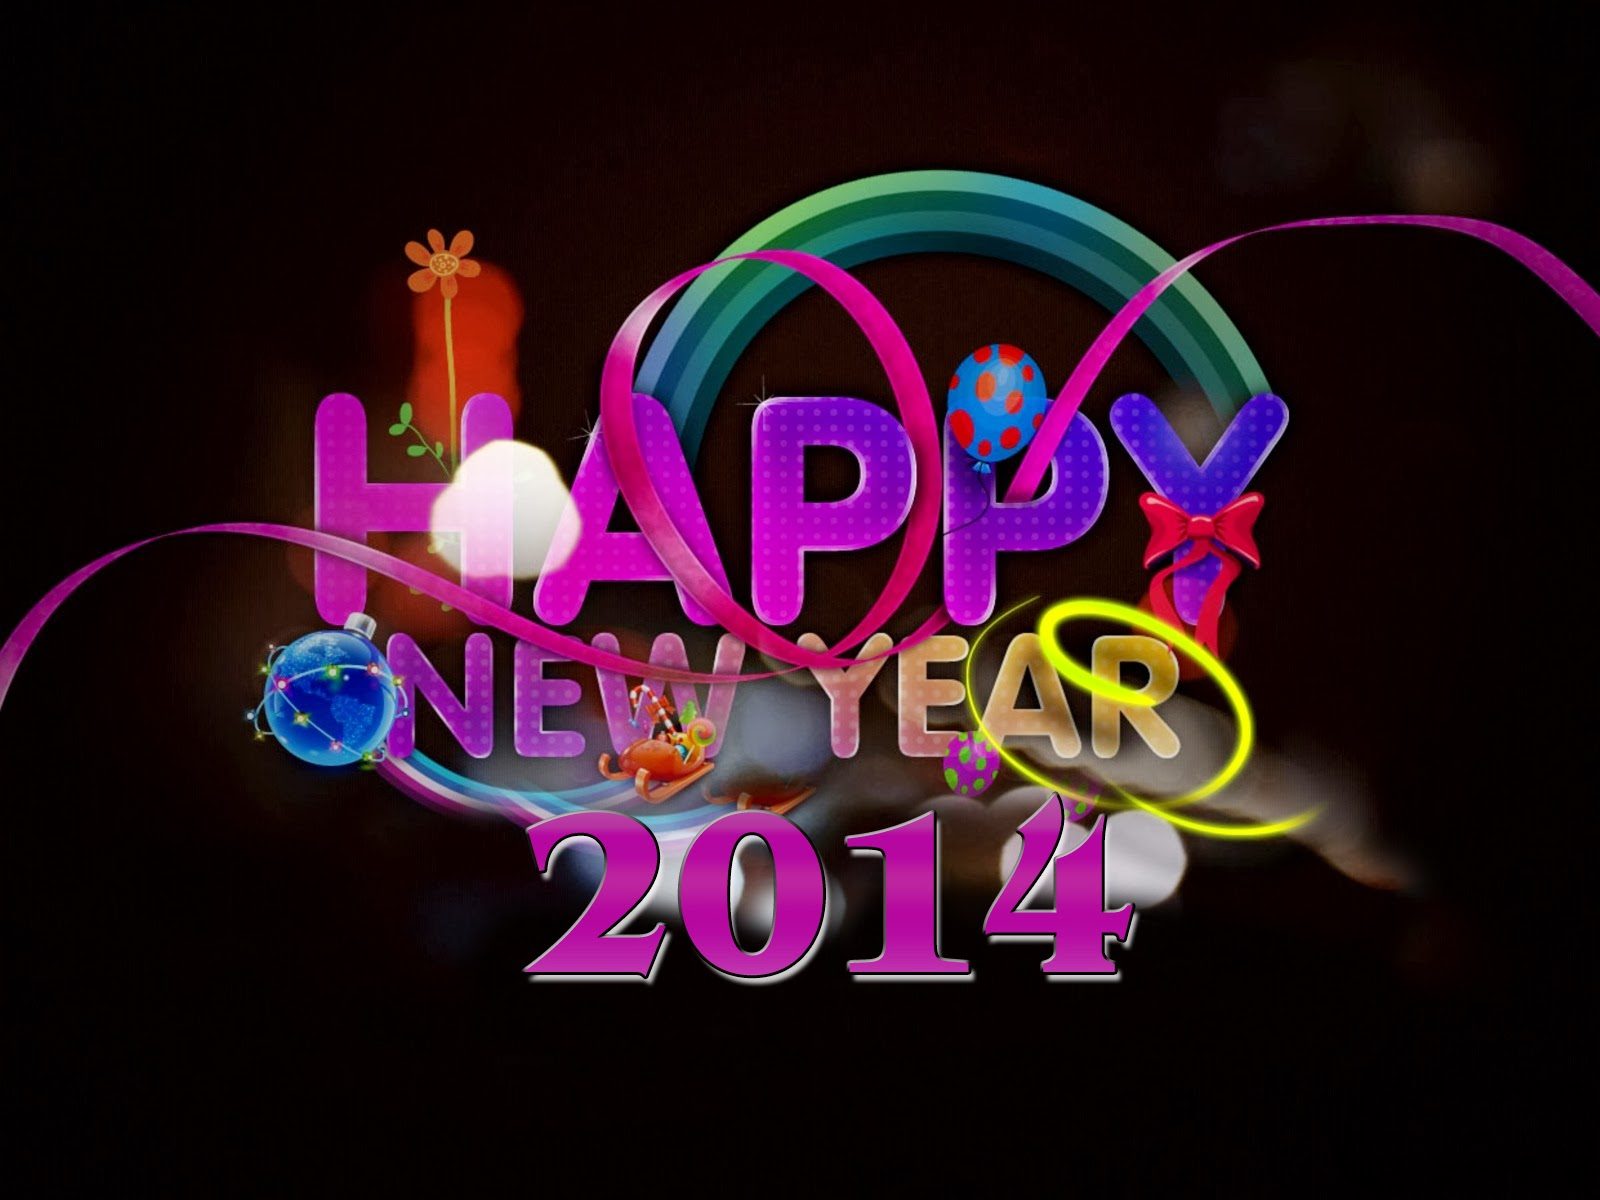 Collection of hd wallpaper life happy new year wallpapers happy new yea 2014 hd wallpaper free download voltagebd Image collections